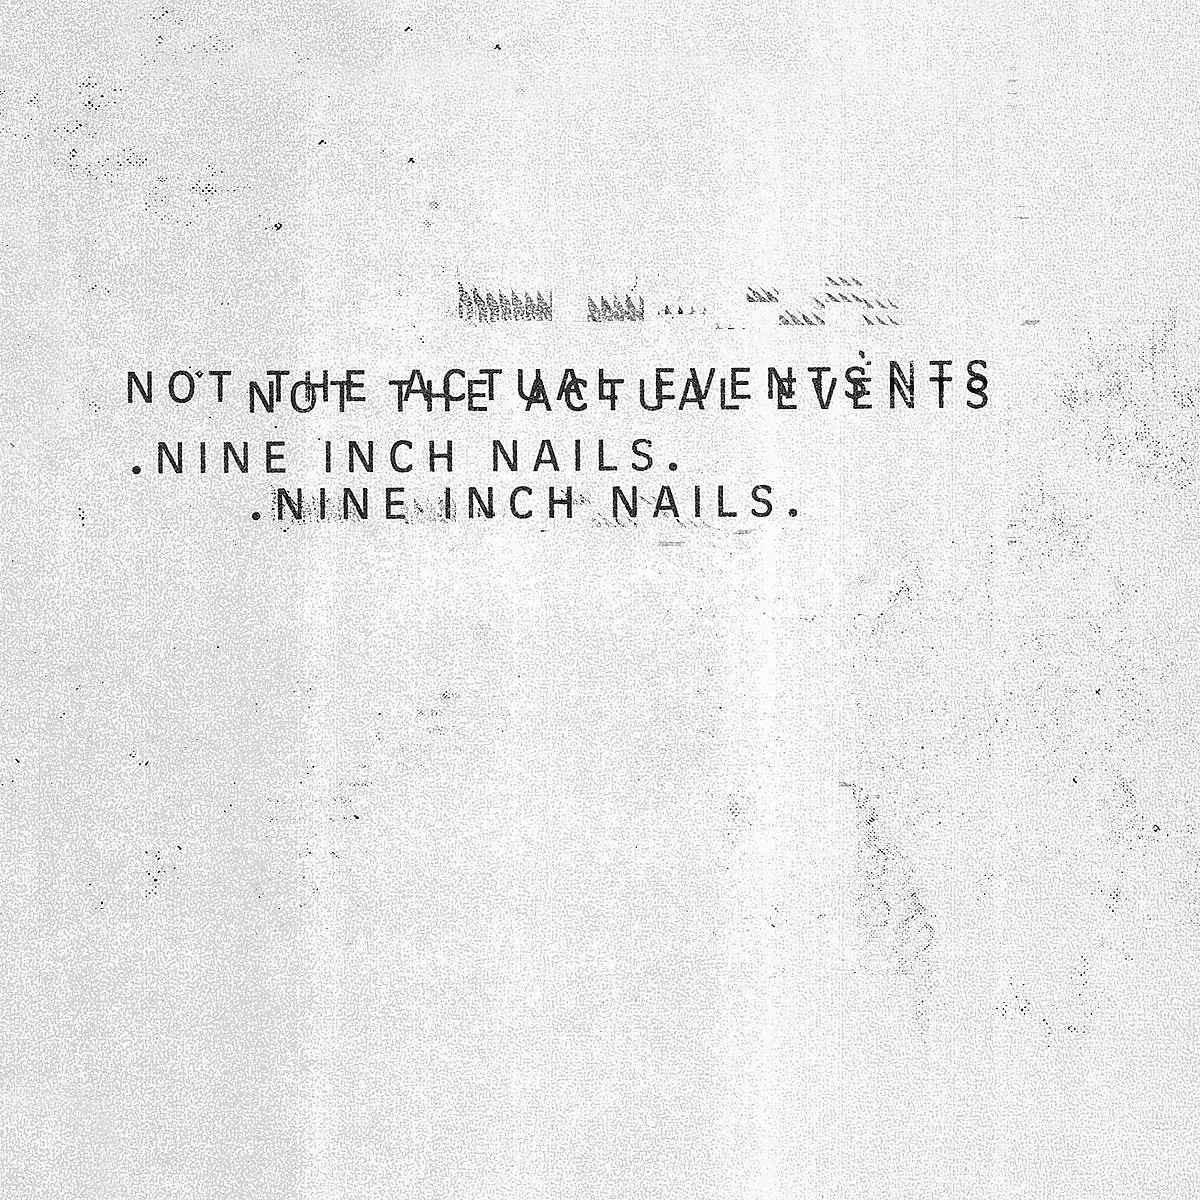 Nine Inch Nails - Not The Actual Events [LP] - Amazon.com Music